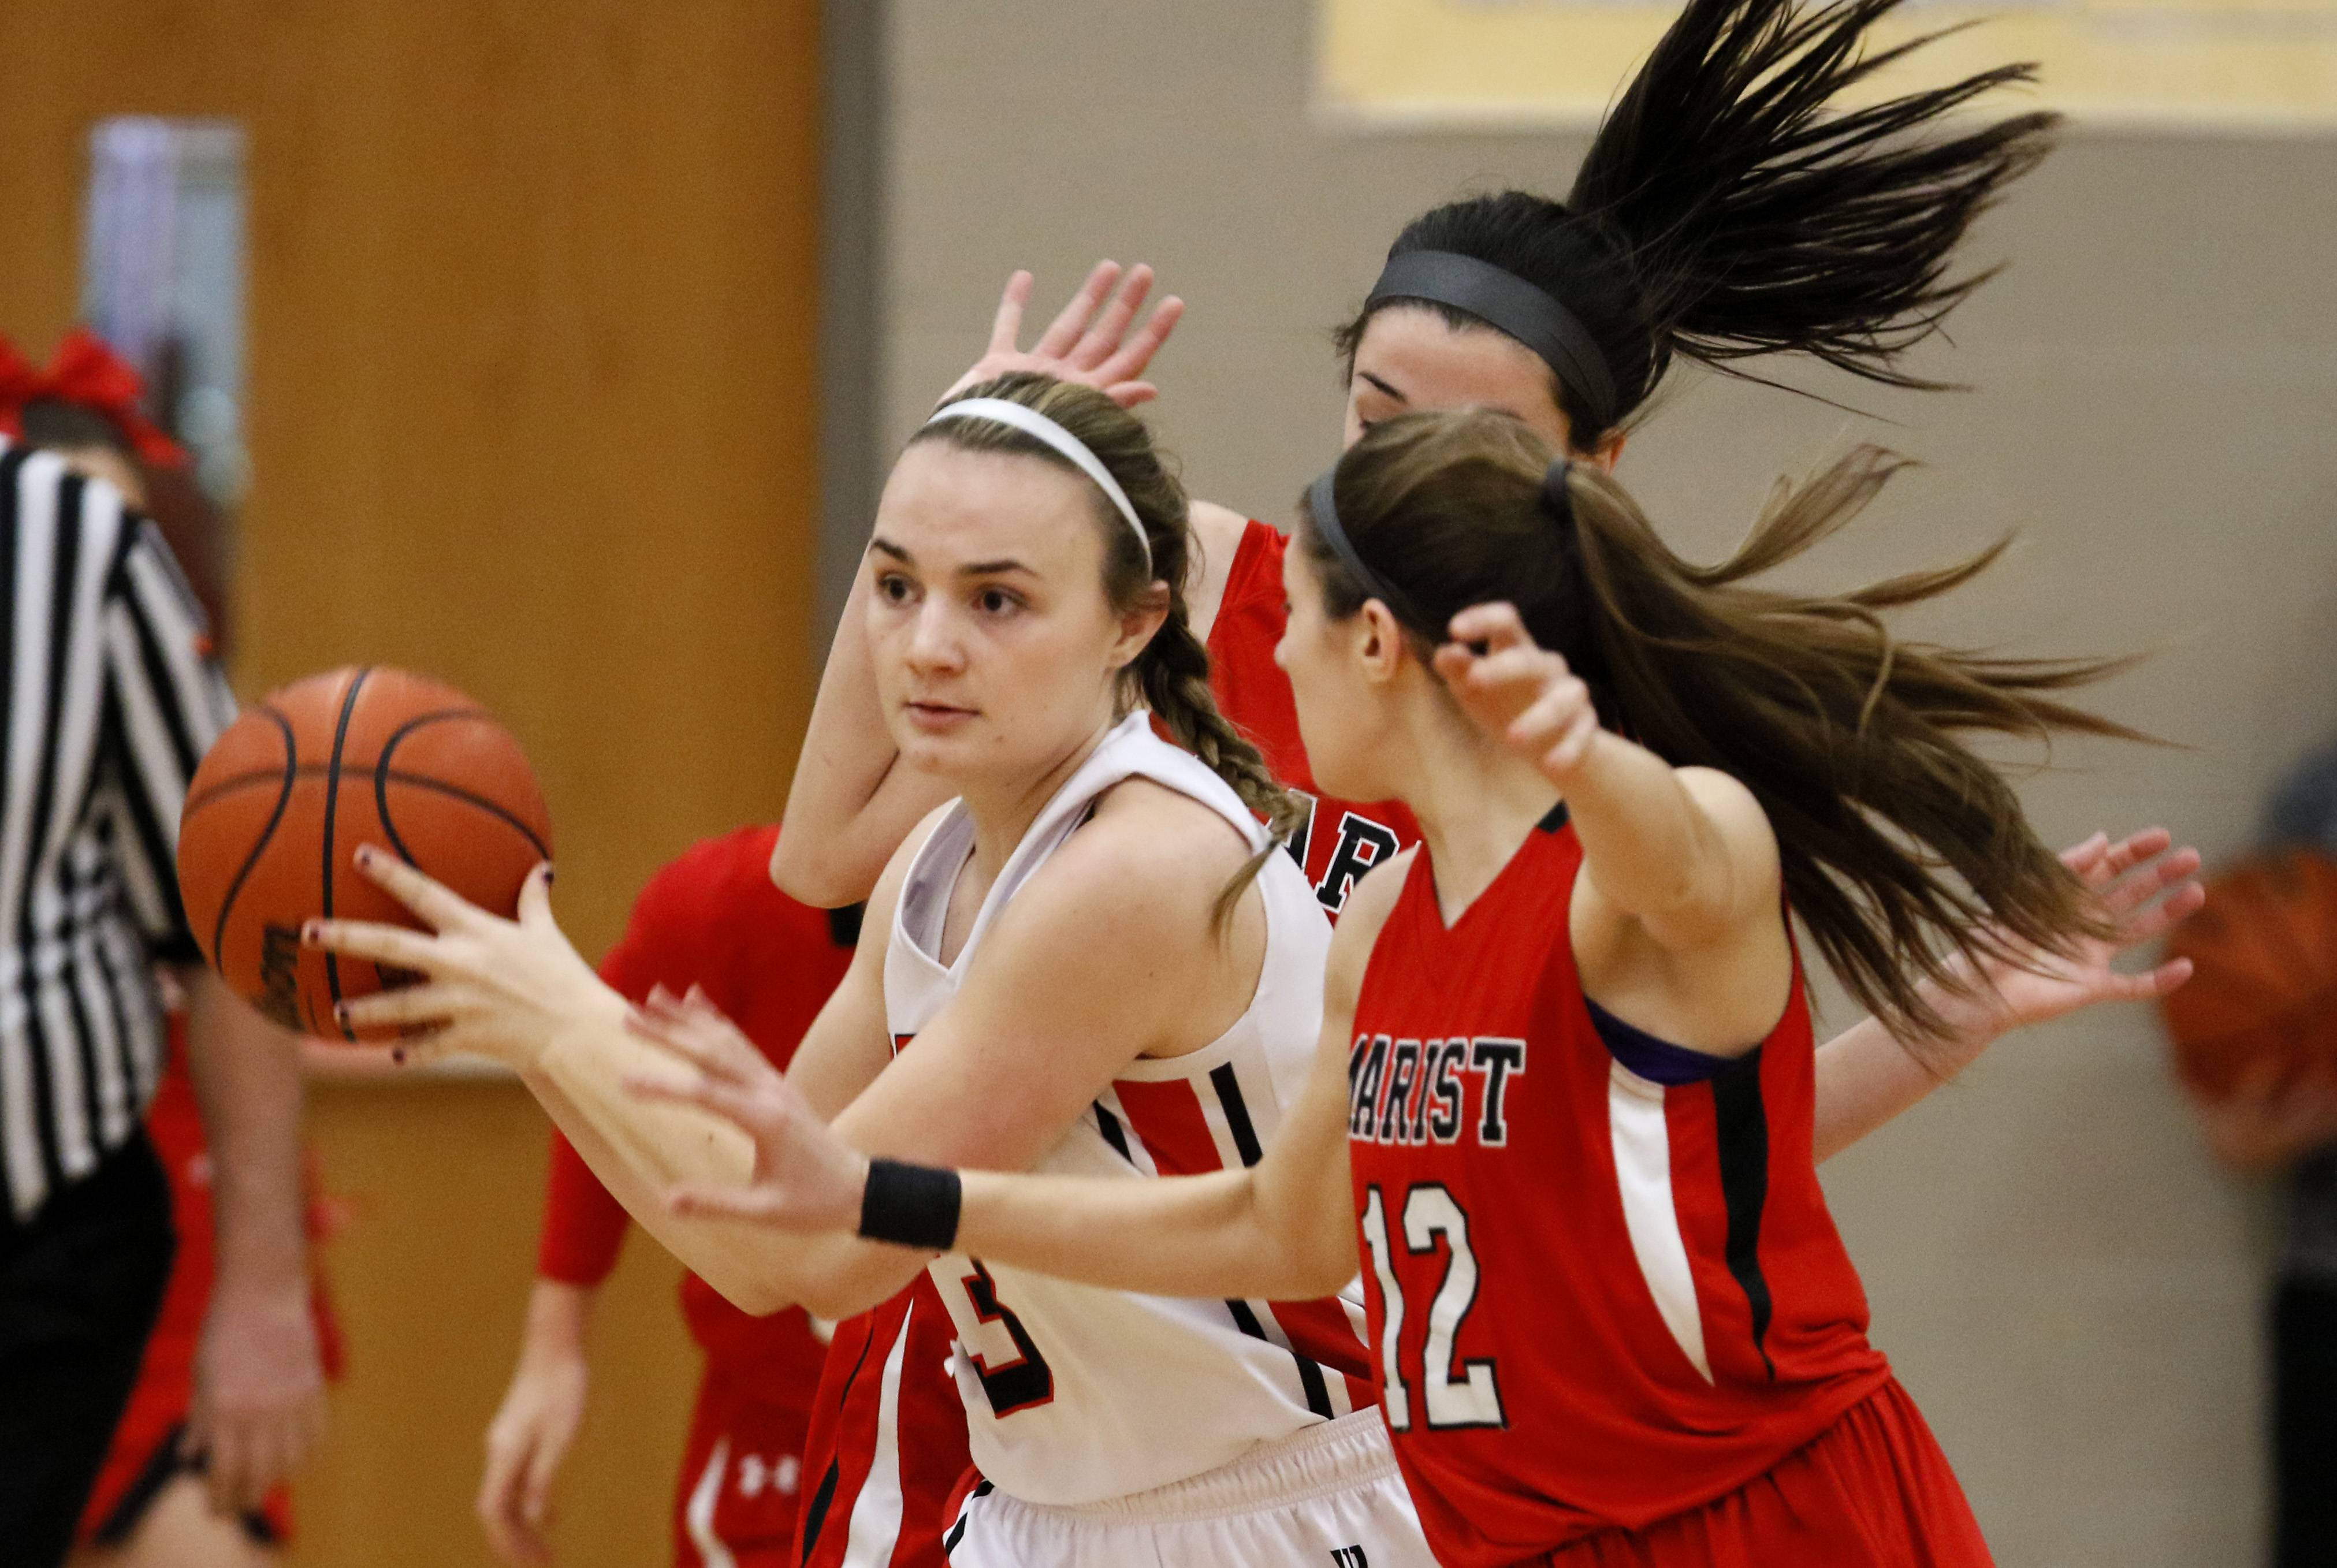 Benet endures a difficult night against Marist